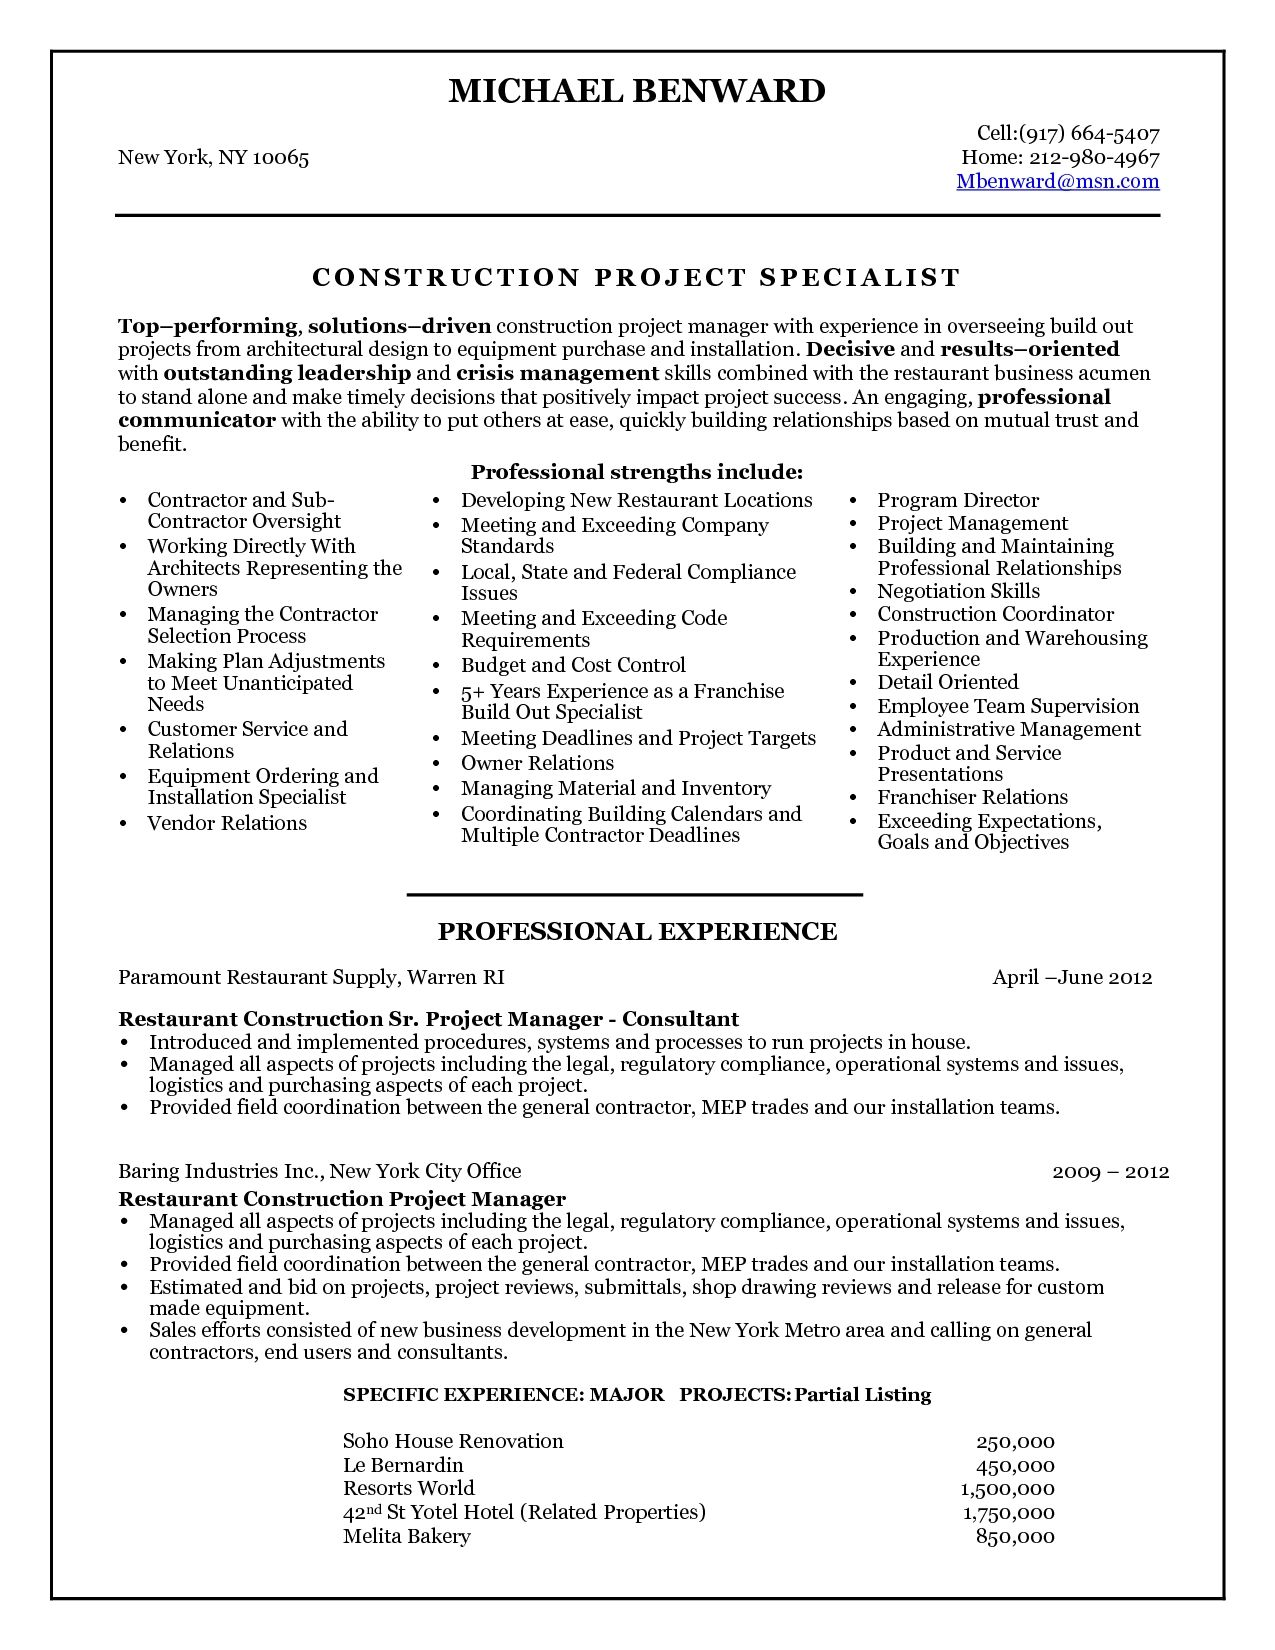 It Consultant Resume Examples Image Result For Consultant Resume Samples  Randomness  Pinterest